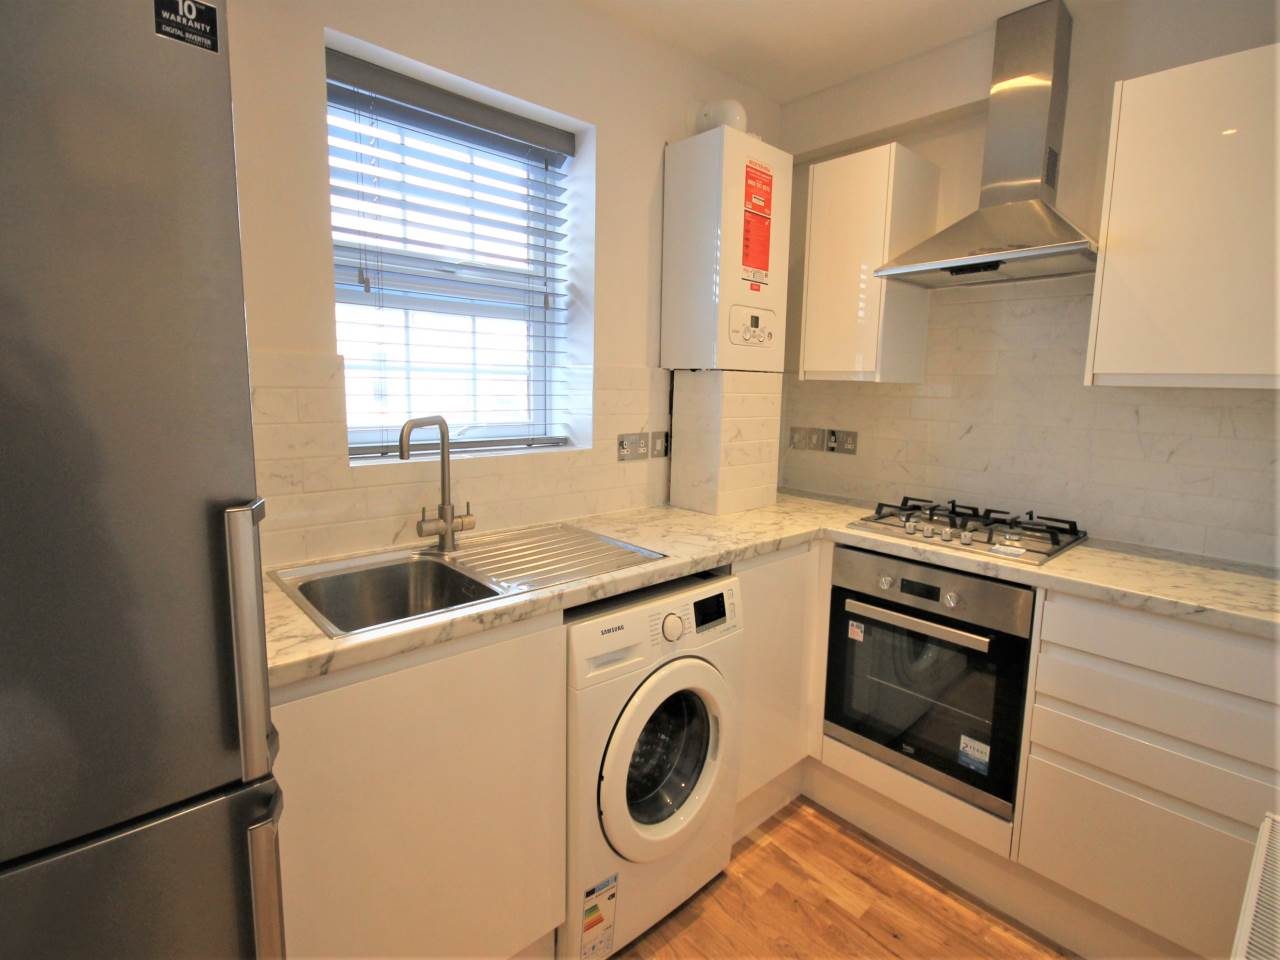 1 bed studio-flat to rent in Chadwell Heath - Property Image 1